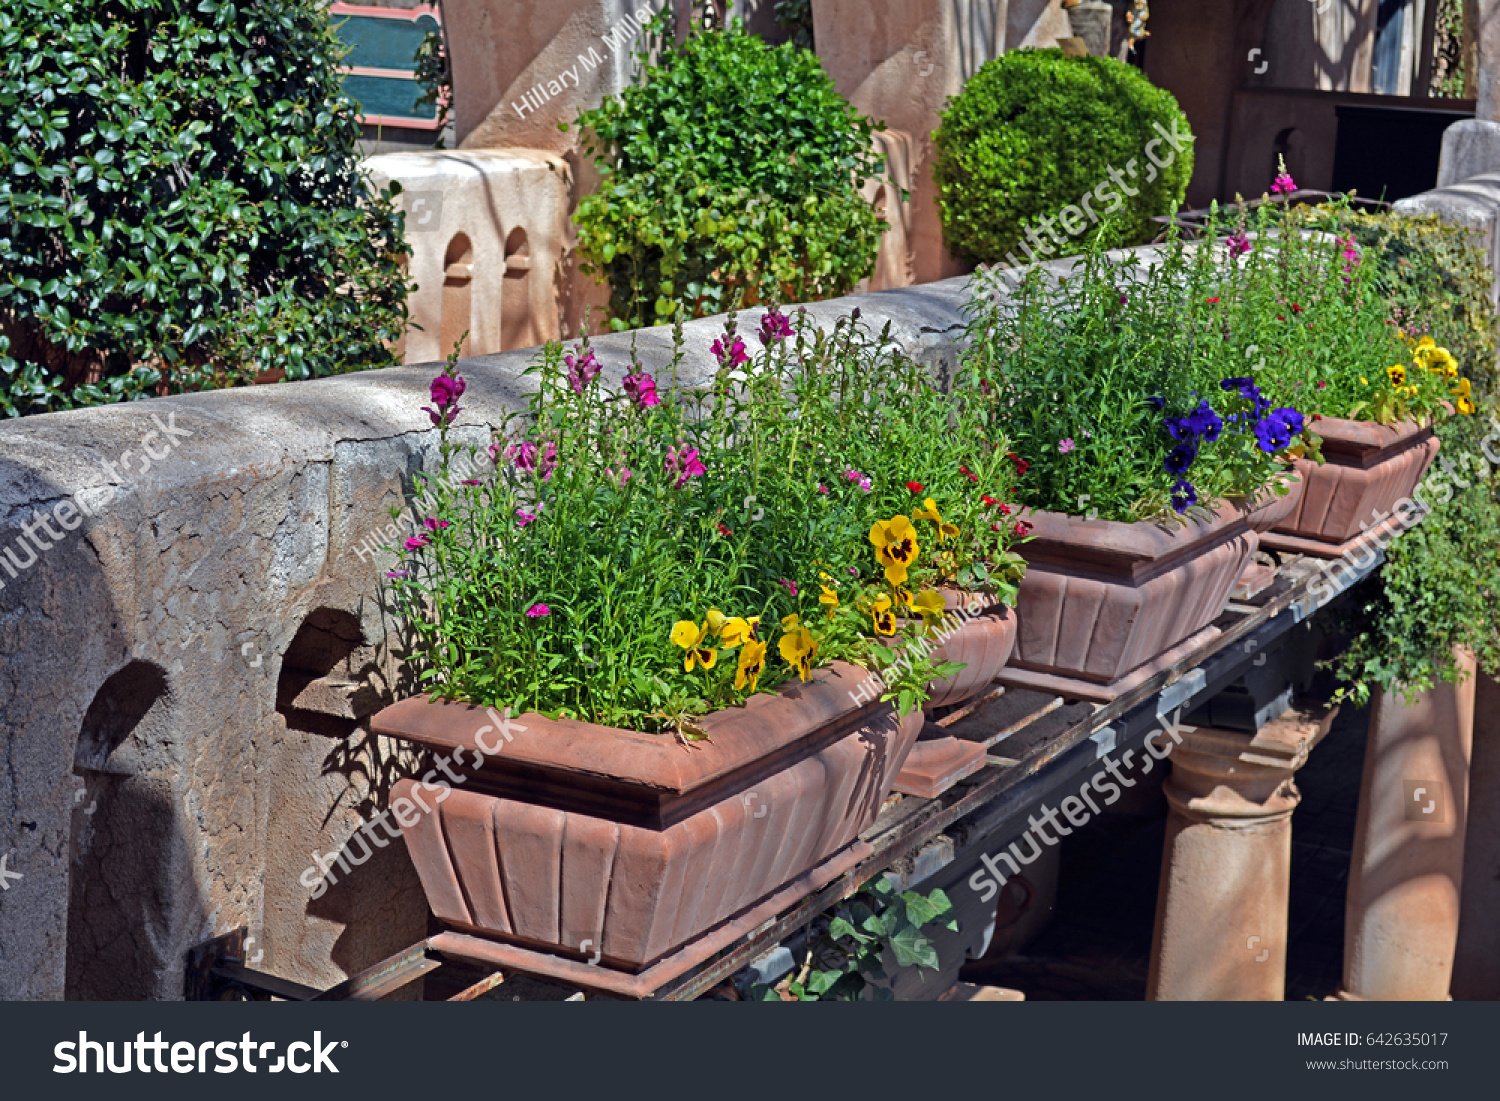 A Hanging Shelf Of Planter Boxes Containing Yellow And Purple Geraniums And  Other Flowers Next To